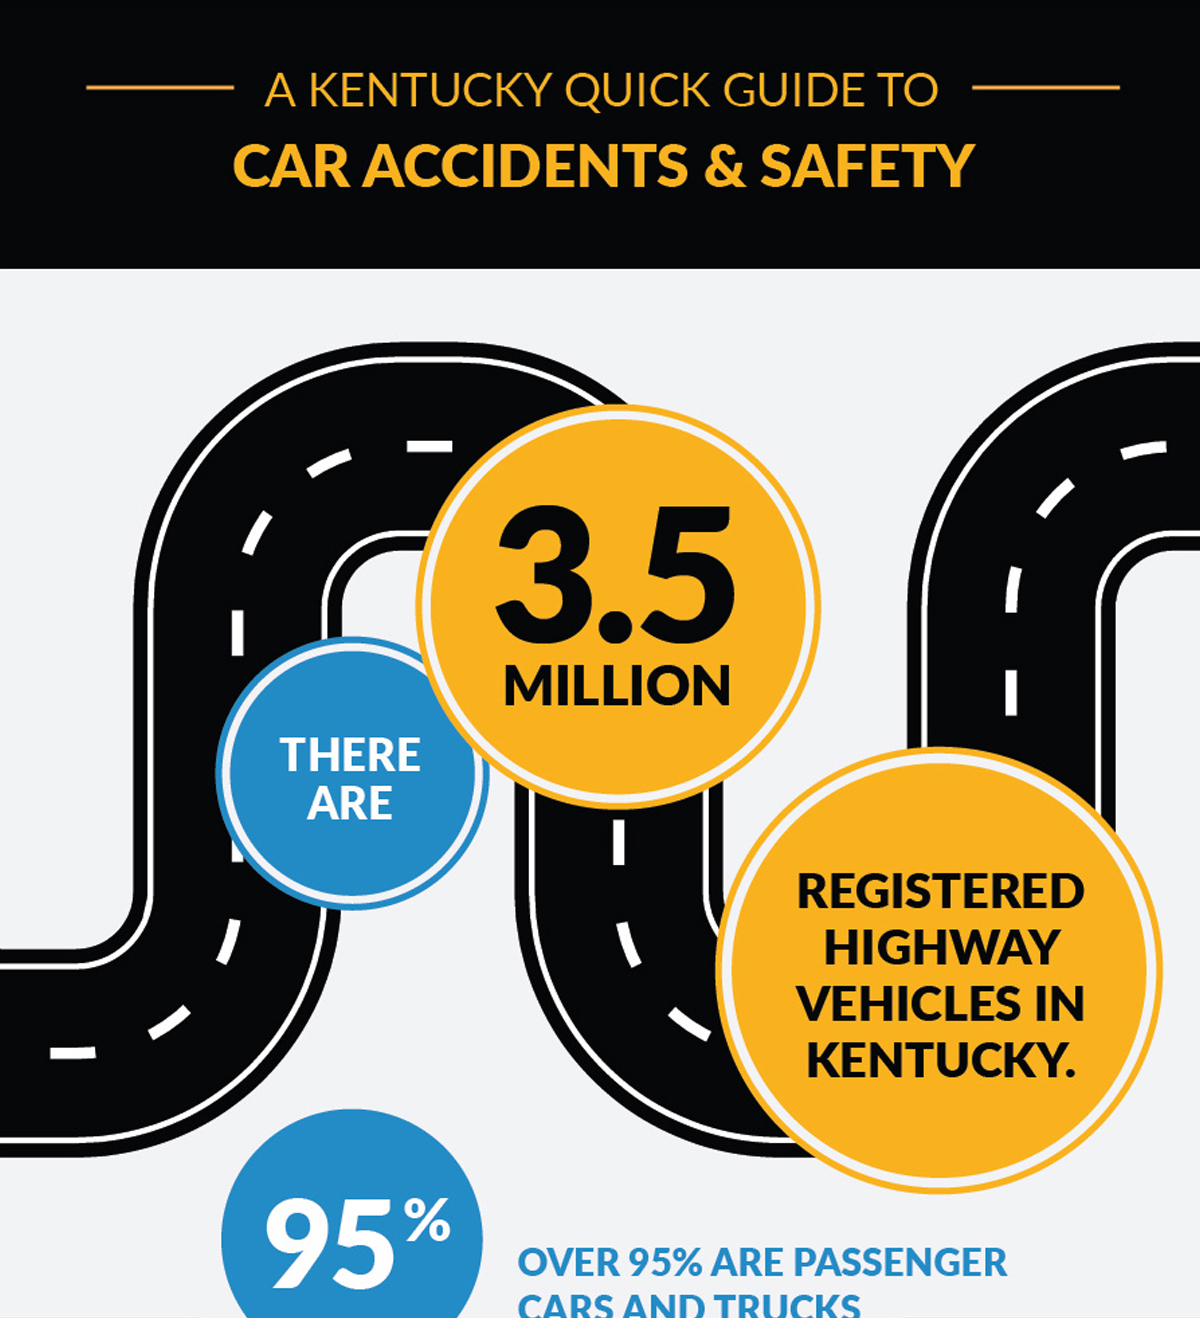 Kentucky car accident safety guide